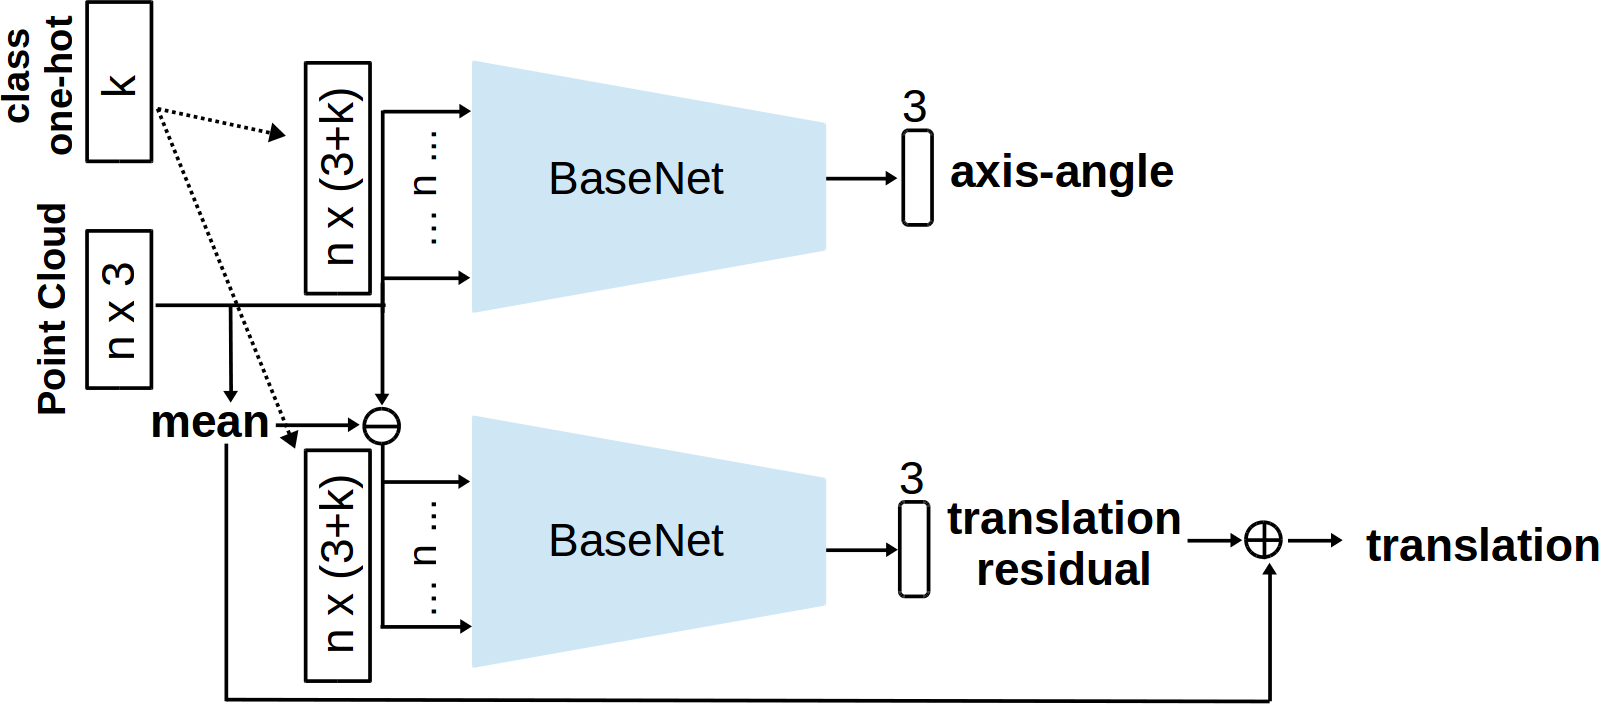 (a) The architecture of BaseNet. The numbers in parentheses are numbers of MLP layers. Numbers not in parentheses indicate the dimensions of intermediate feature vectors. A feature vector for each point is learned with shared weights. A max pooling layer aggregates the individual features into a global feature vector. A regression network with 3 fully-connected layers outputs the pose prediction. (b) Diagram for input and output of our pose networks. For the rotation network, the input is point coordinate information concatenated with class information per point, the output is rotation in axis-angle representation. For the translation network, the input coordinates are normalized by removing the mean. It outputs translation residual. The full translation is obtained by adding back the coordinate mean. The number of input points is